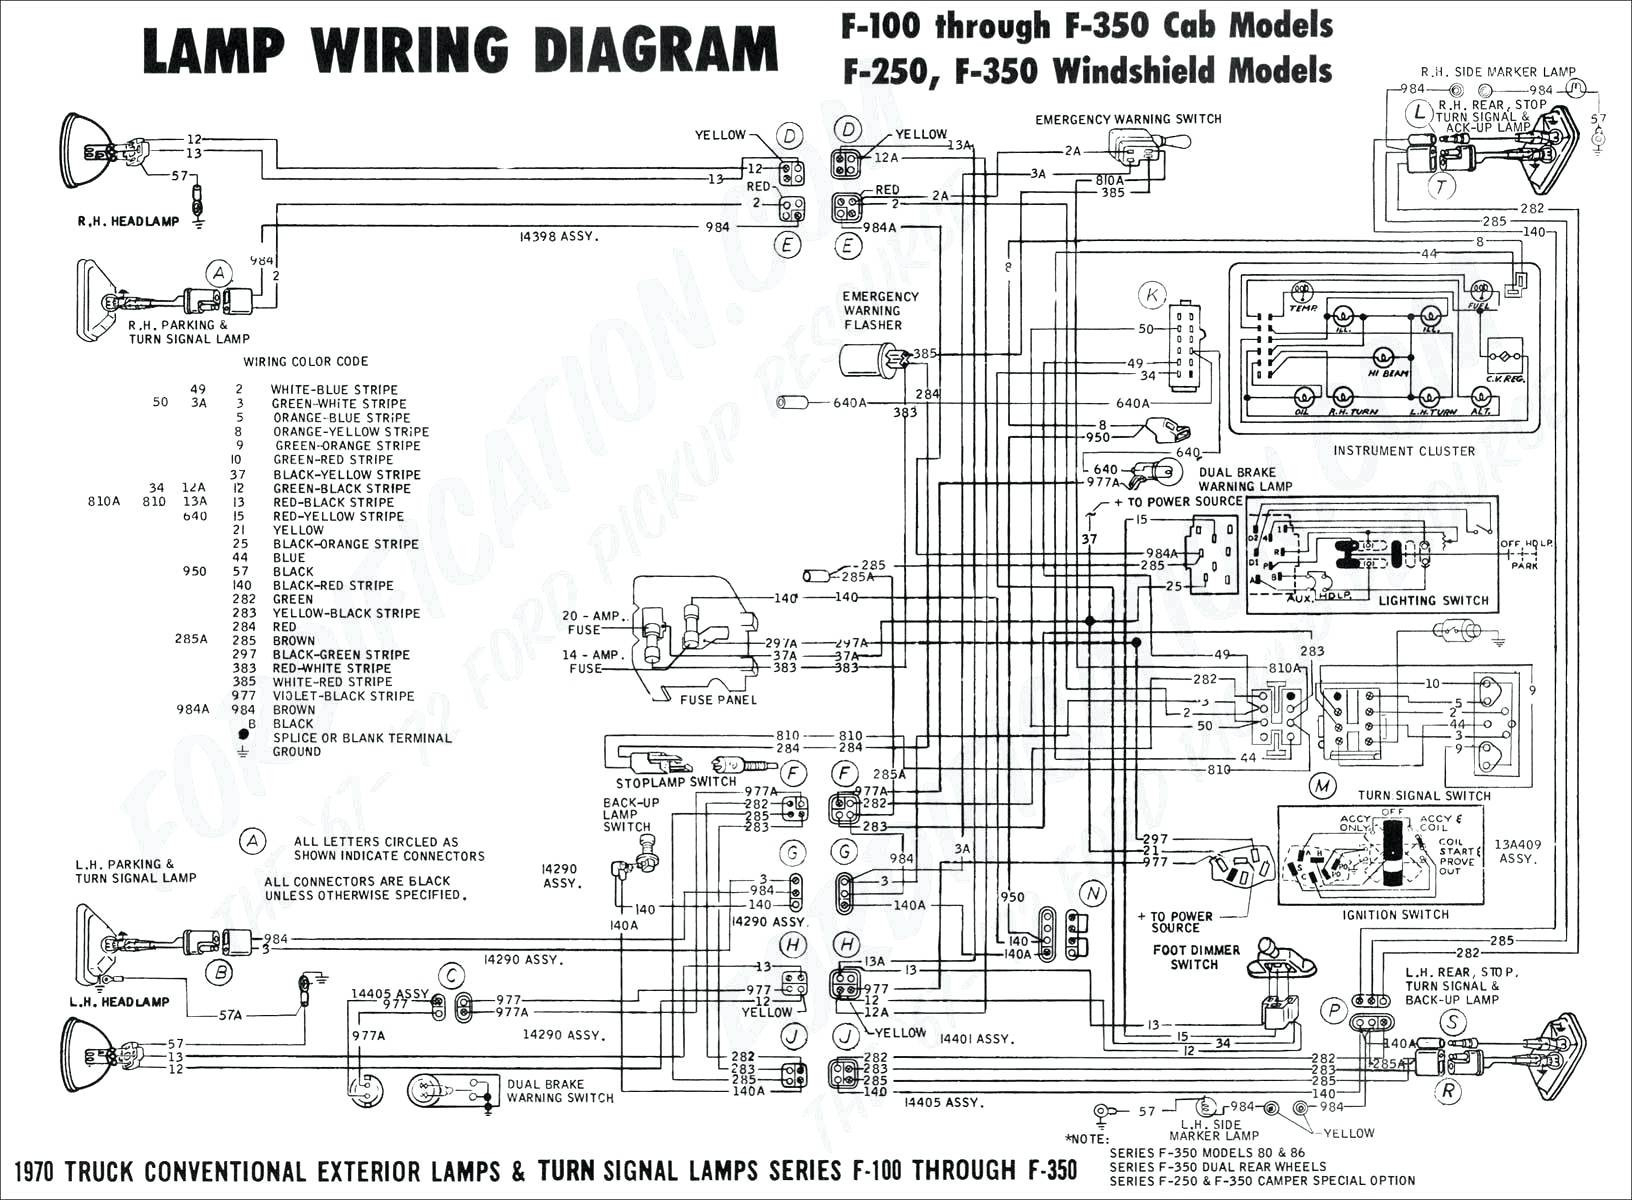 Get 2001 Ford F250 Trailer Wiring Diagram Sample - Chevy Silverado Trailer Wiring Diagram